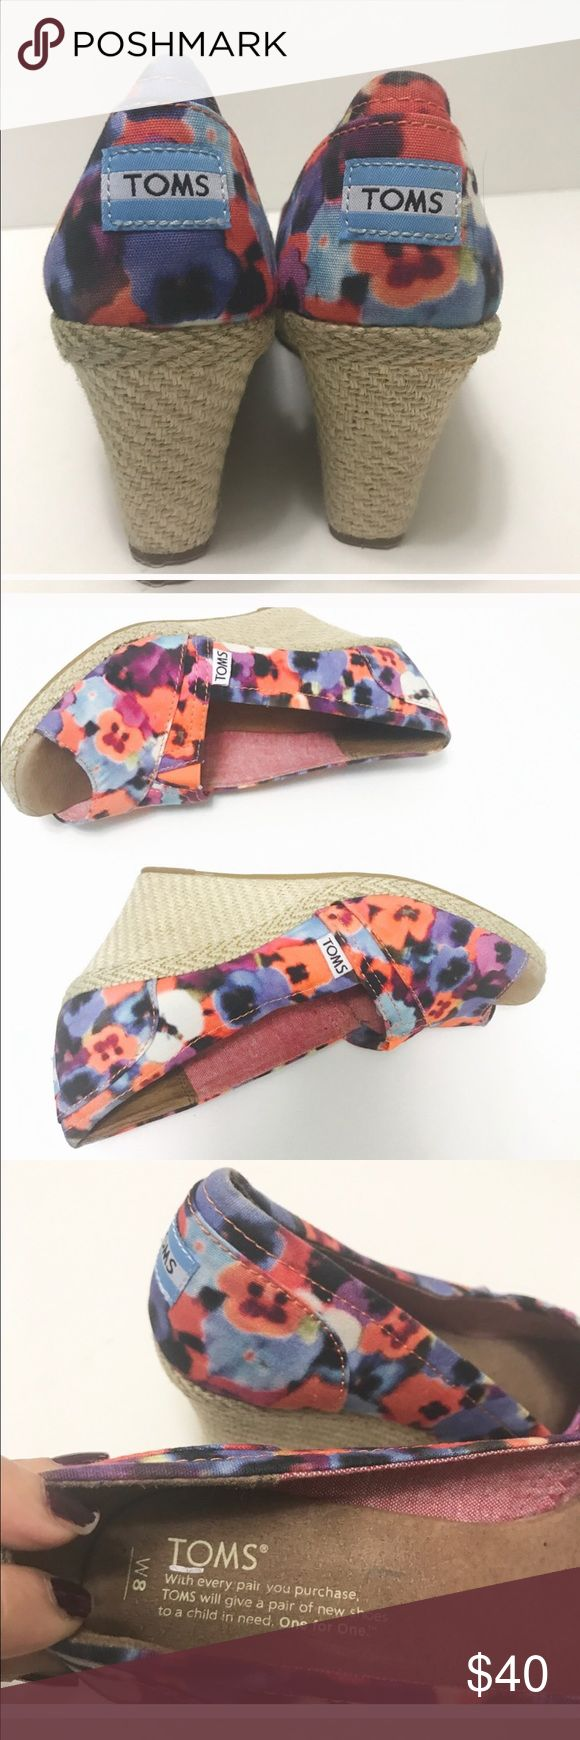 "TOMS Wedge Peep Toe Floral Shoes Espadrilles TOMS Wedge Peep Toe Floral Shoes Espadrilles size 8 preowned Fantastic condition see small discolor on heel edge barely noticeable. Very cute. 3"" Heels TOMS Shoes Wedges"